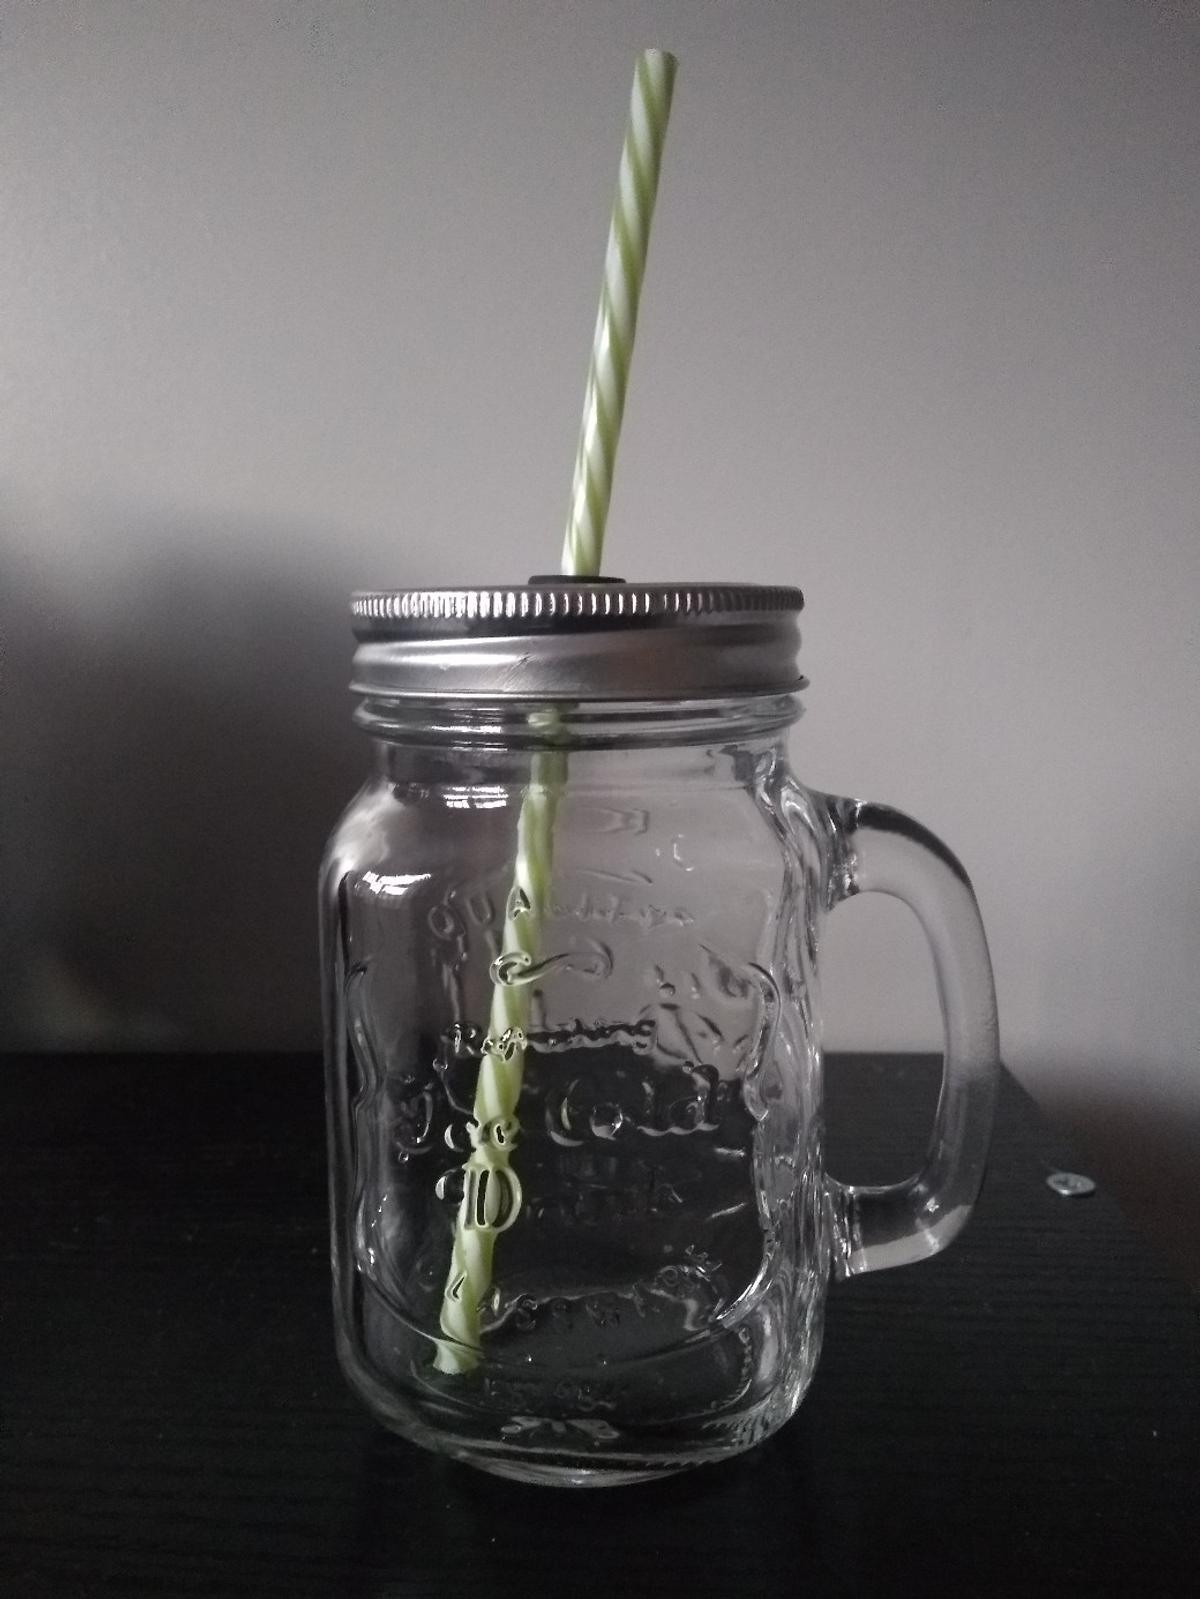 6 'Old Times' Mason jars with lids